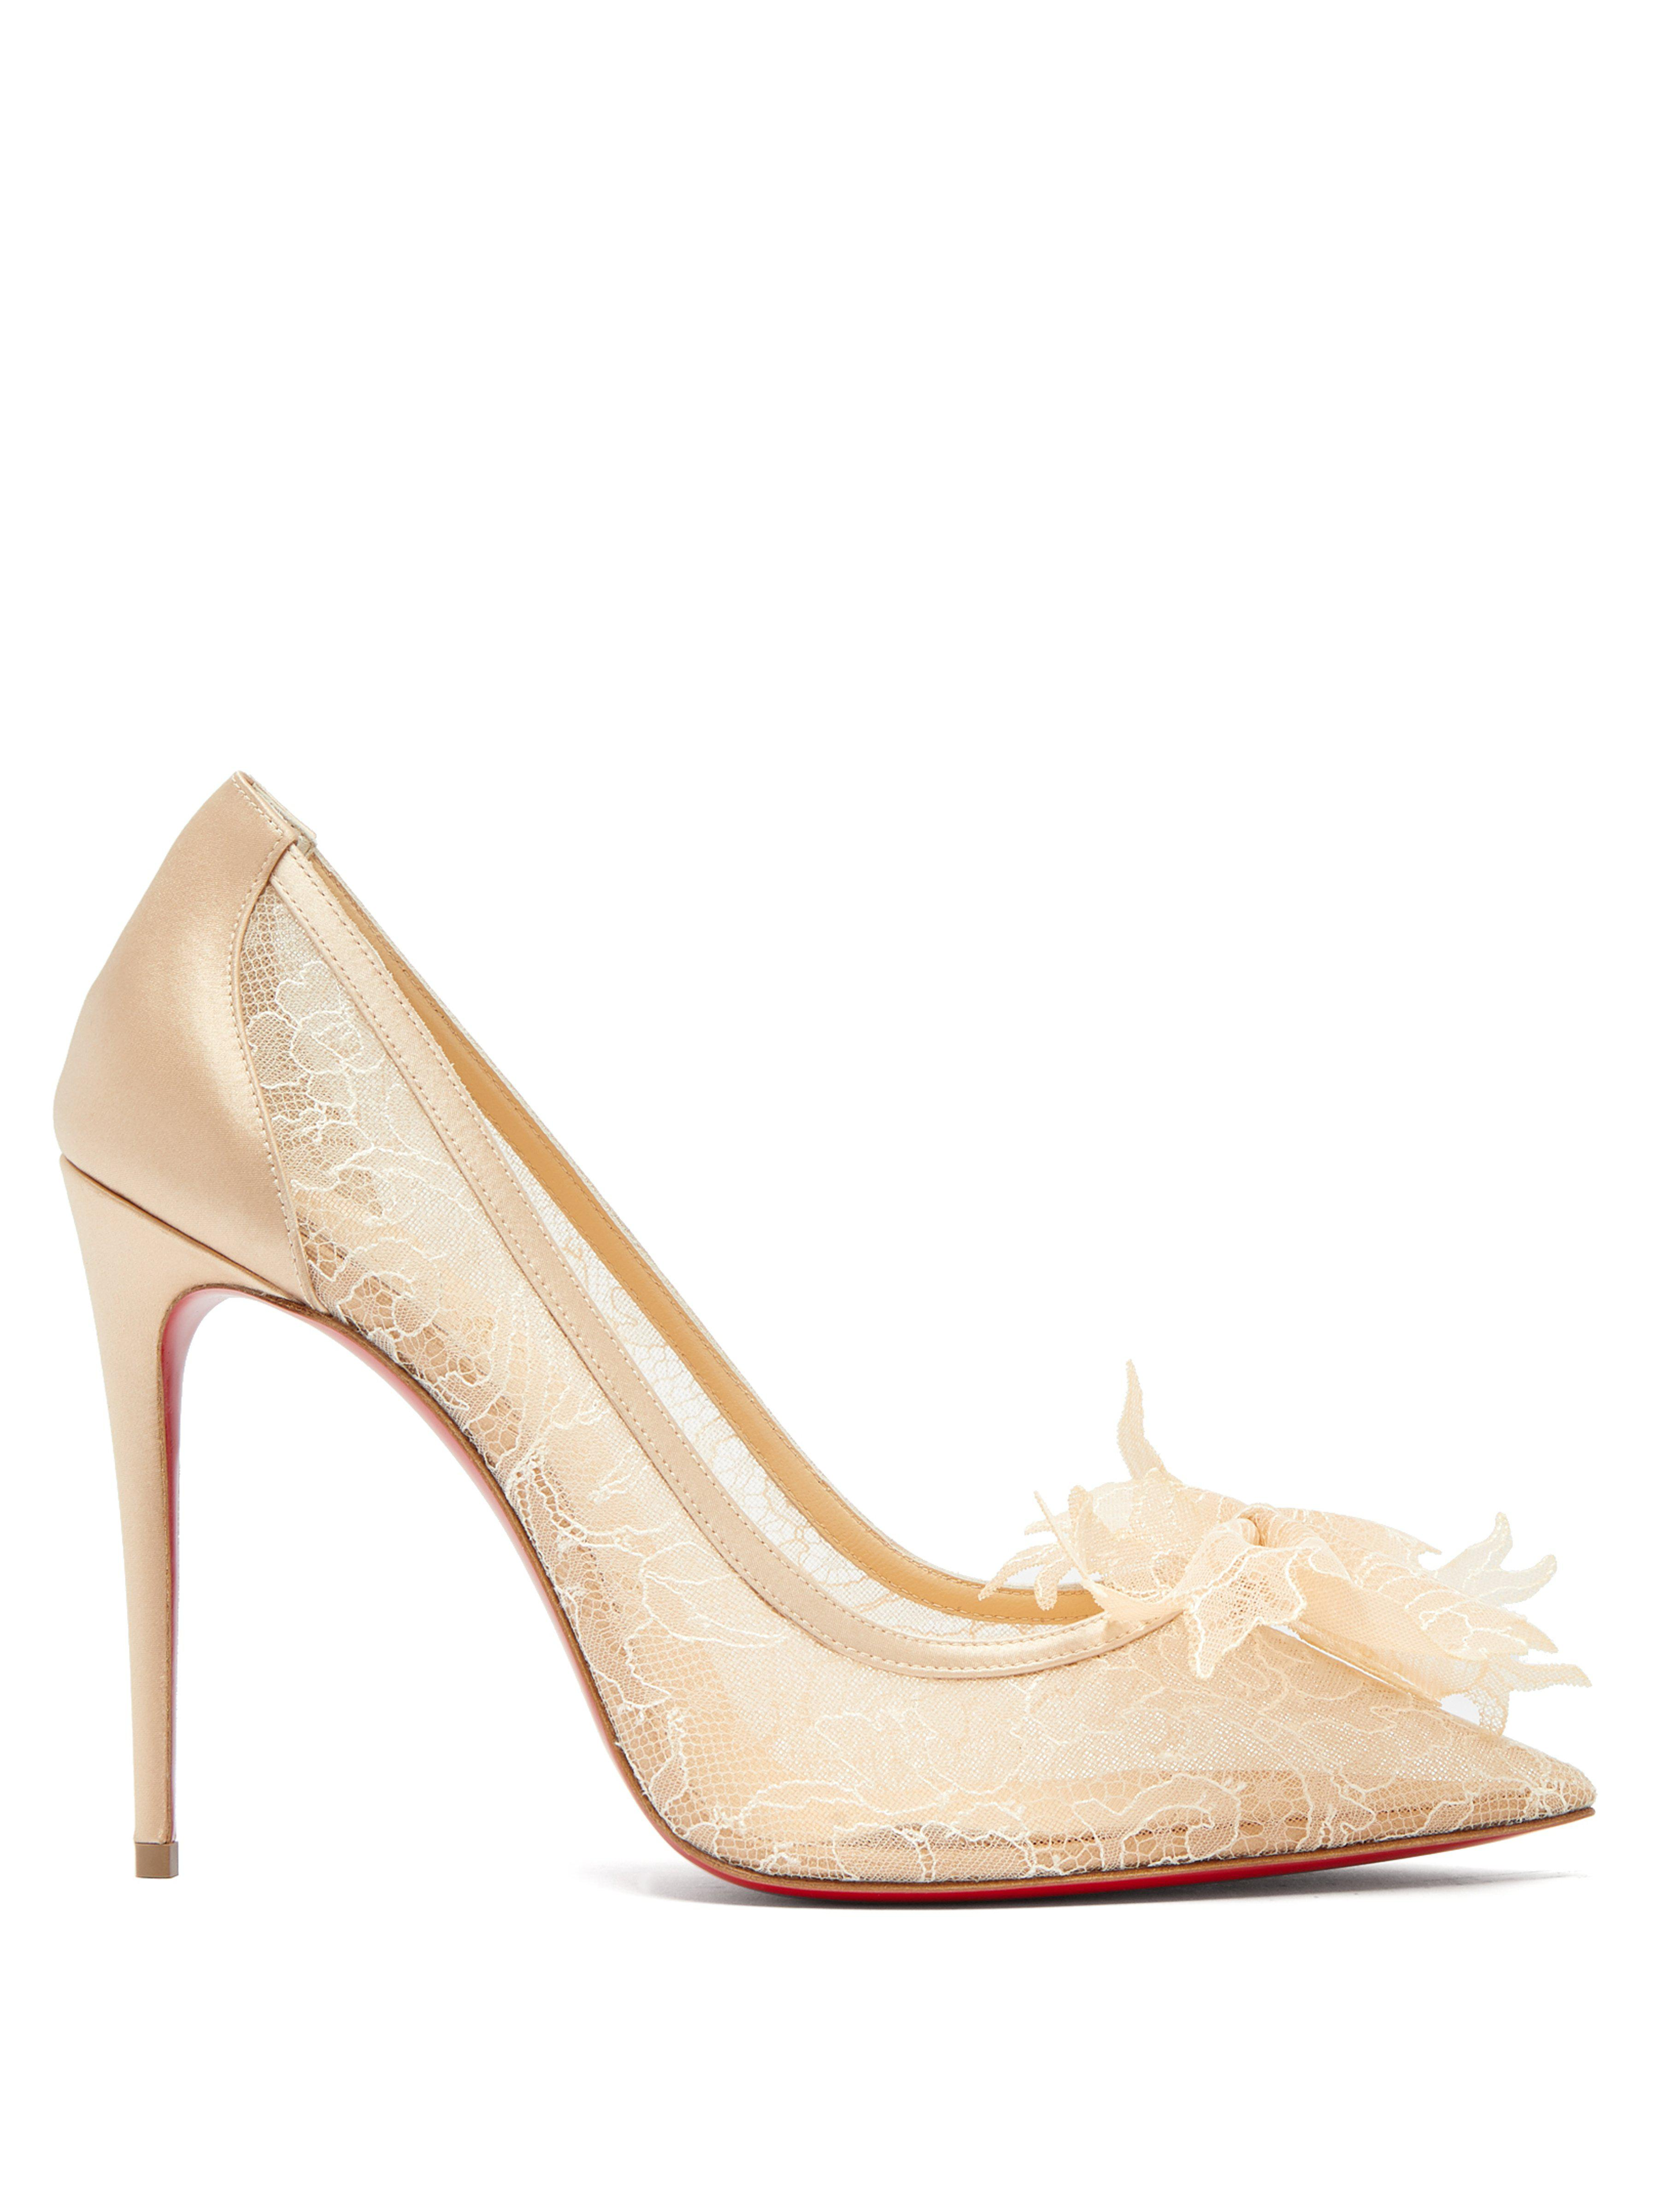 9d96016d505c Christian Louboutin Delicatissima 100 Lace Pumps in Natural - Save ...